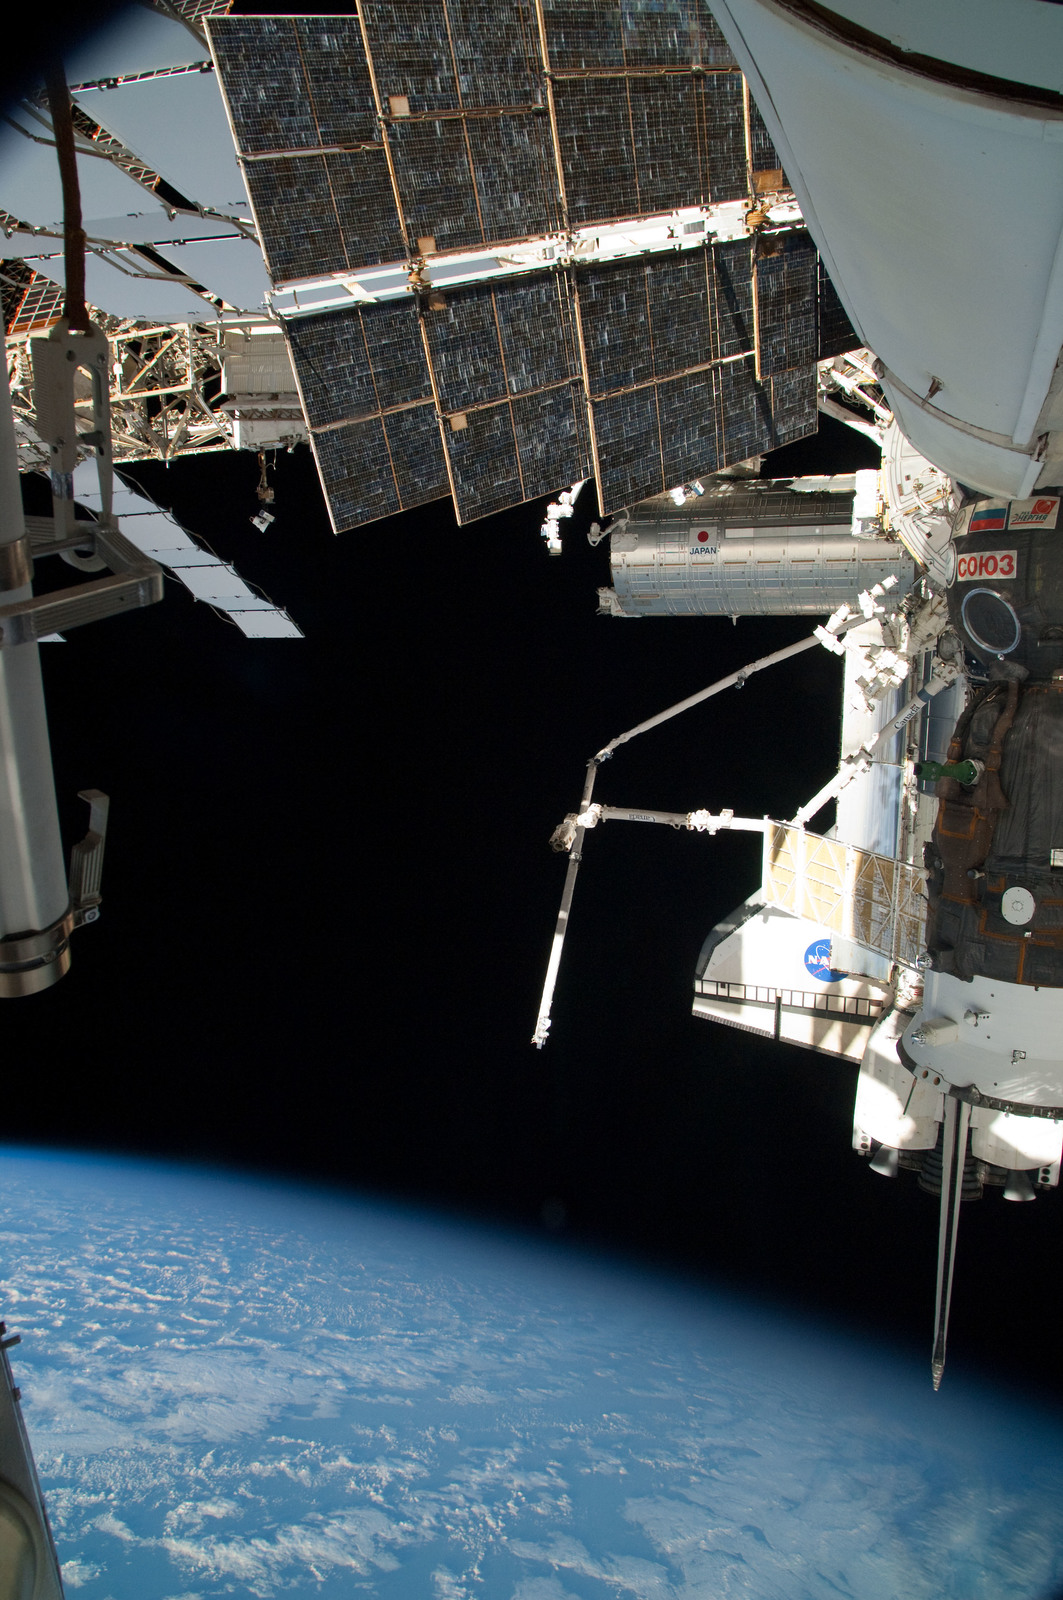 S126E025050 - STS-126 - View of ISS, Docked Soyuz and Endeavour